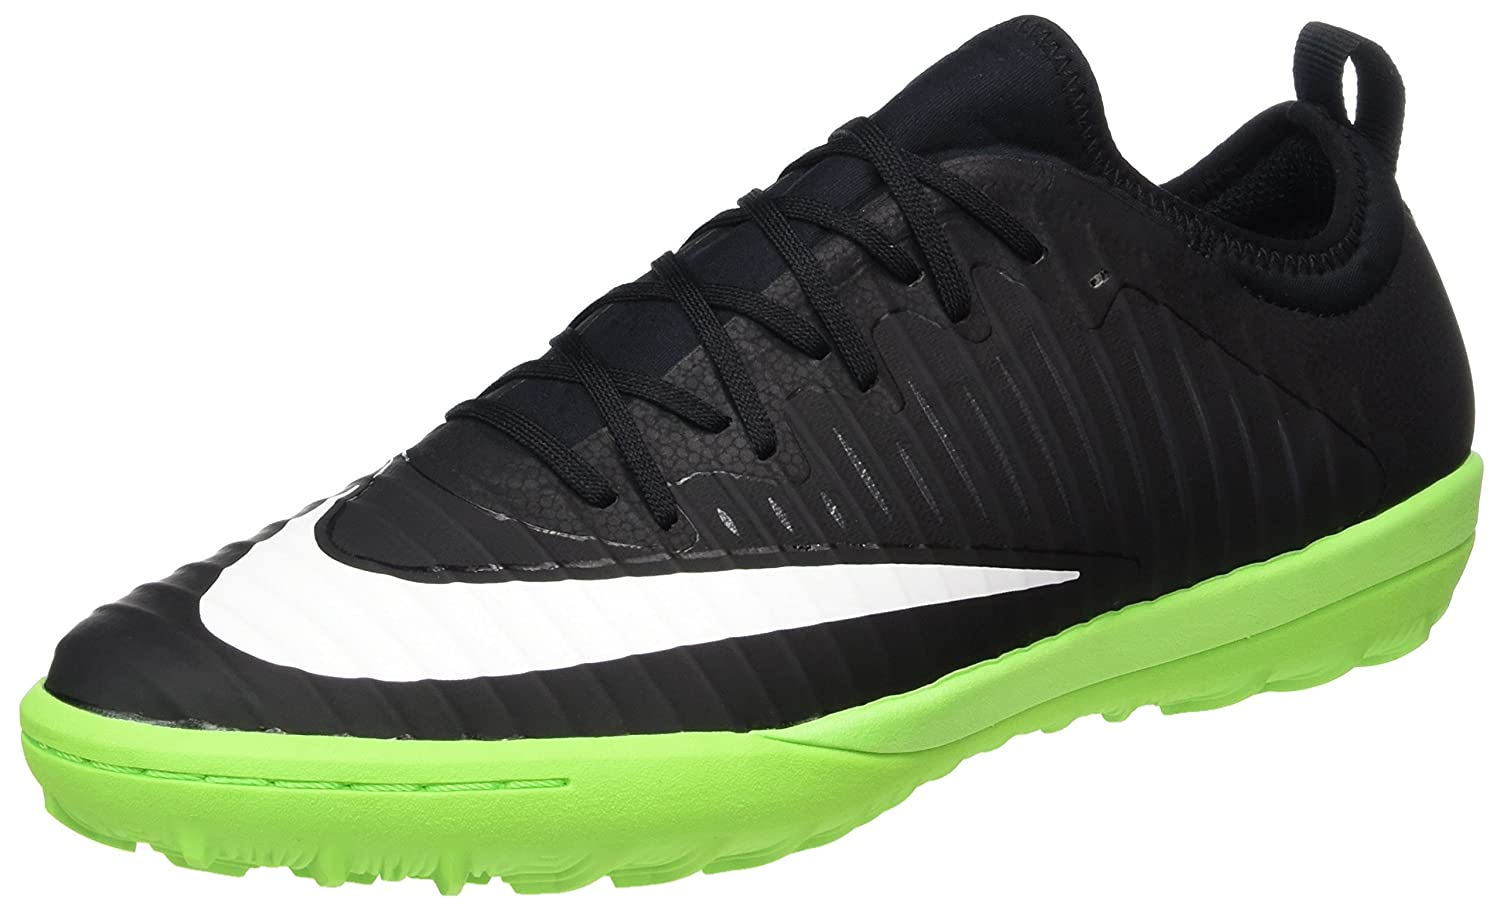 new arrival b7999 74b1e Nike MercurialX Finale II TF Mens Soccer-Shoes 831975